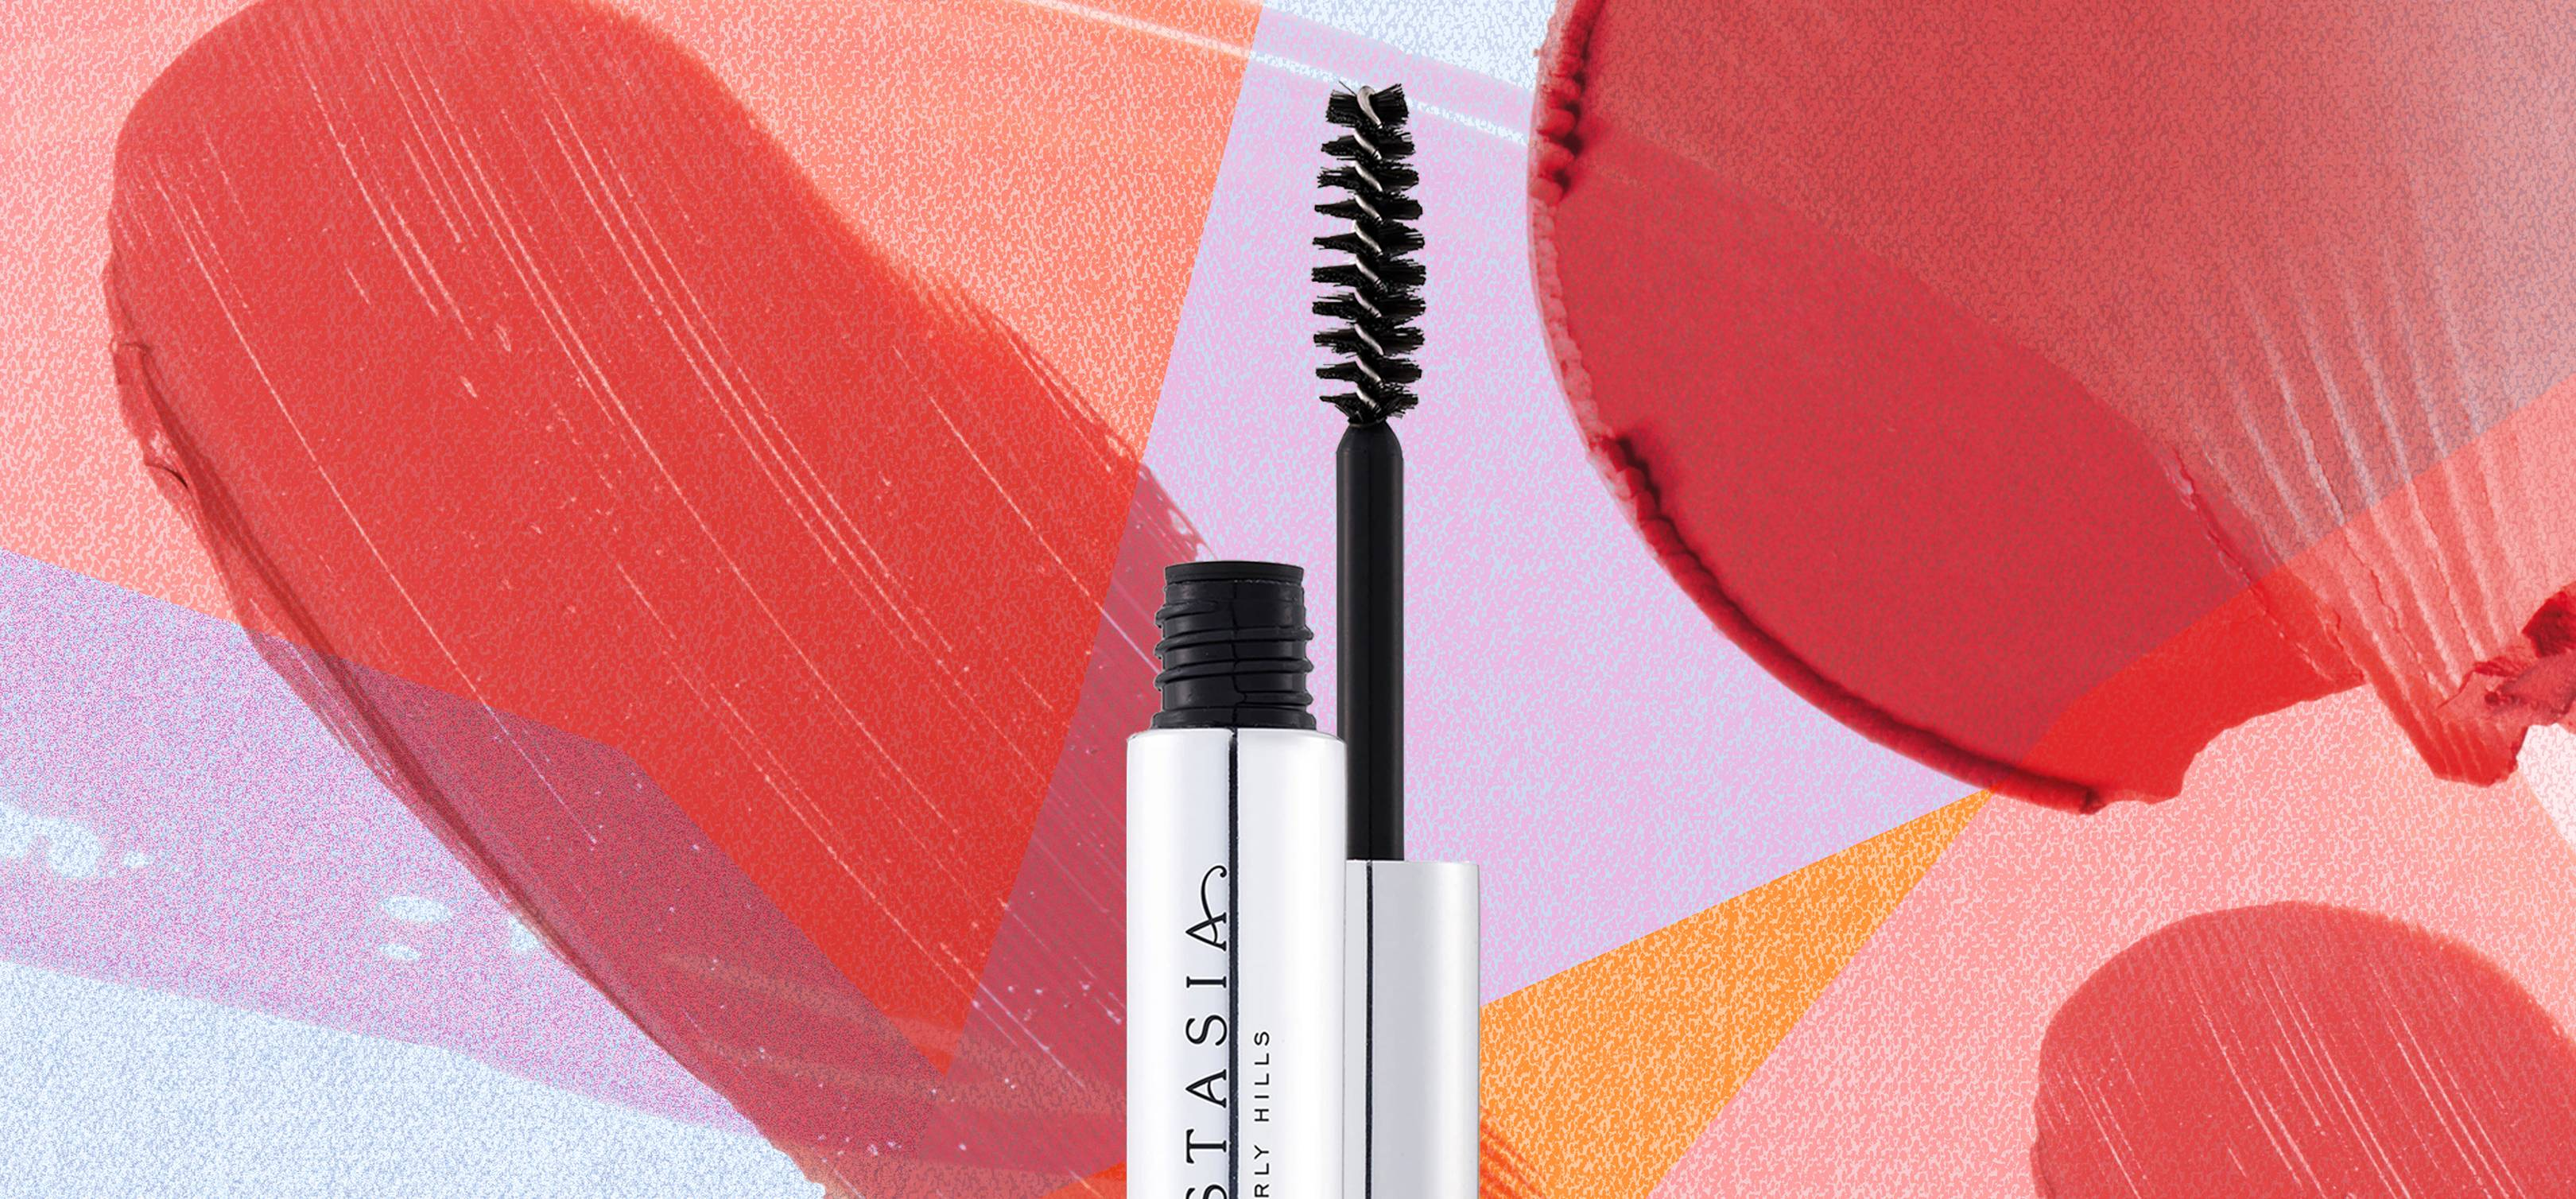 Ana Stasia & Co anastasia beverly hills clear brow gel review | glamour uk